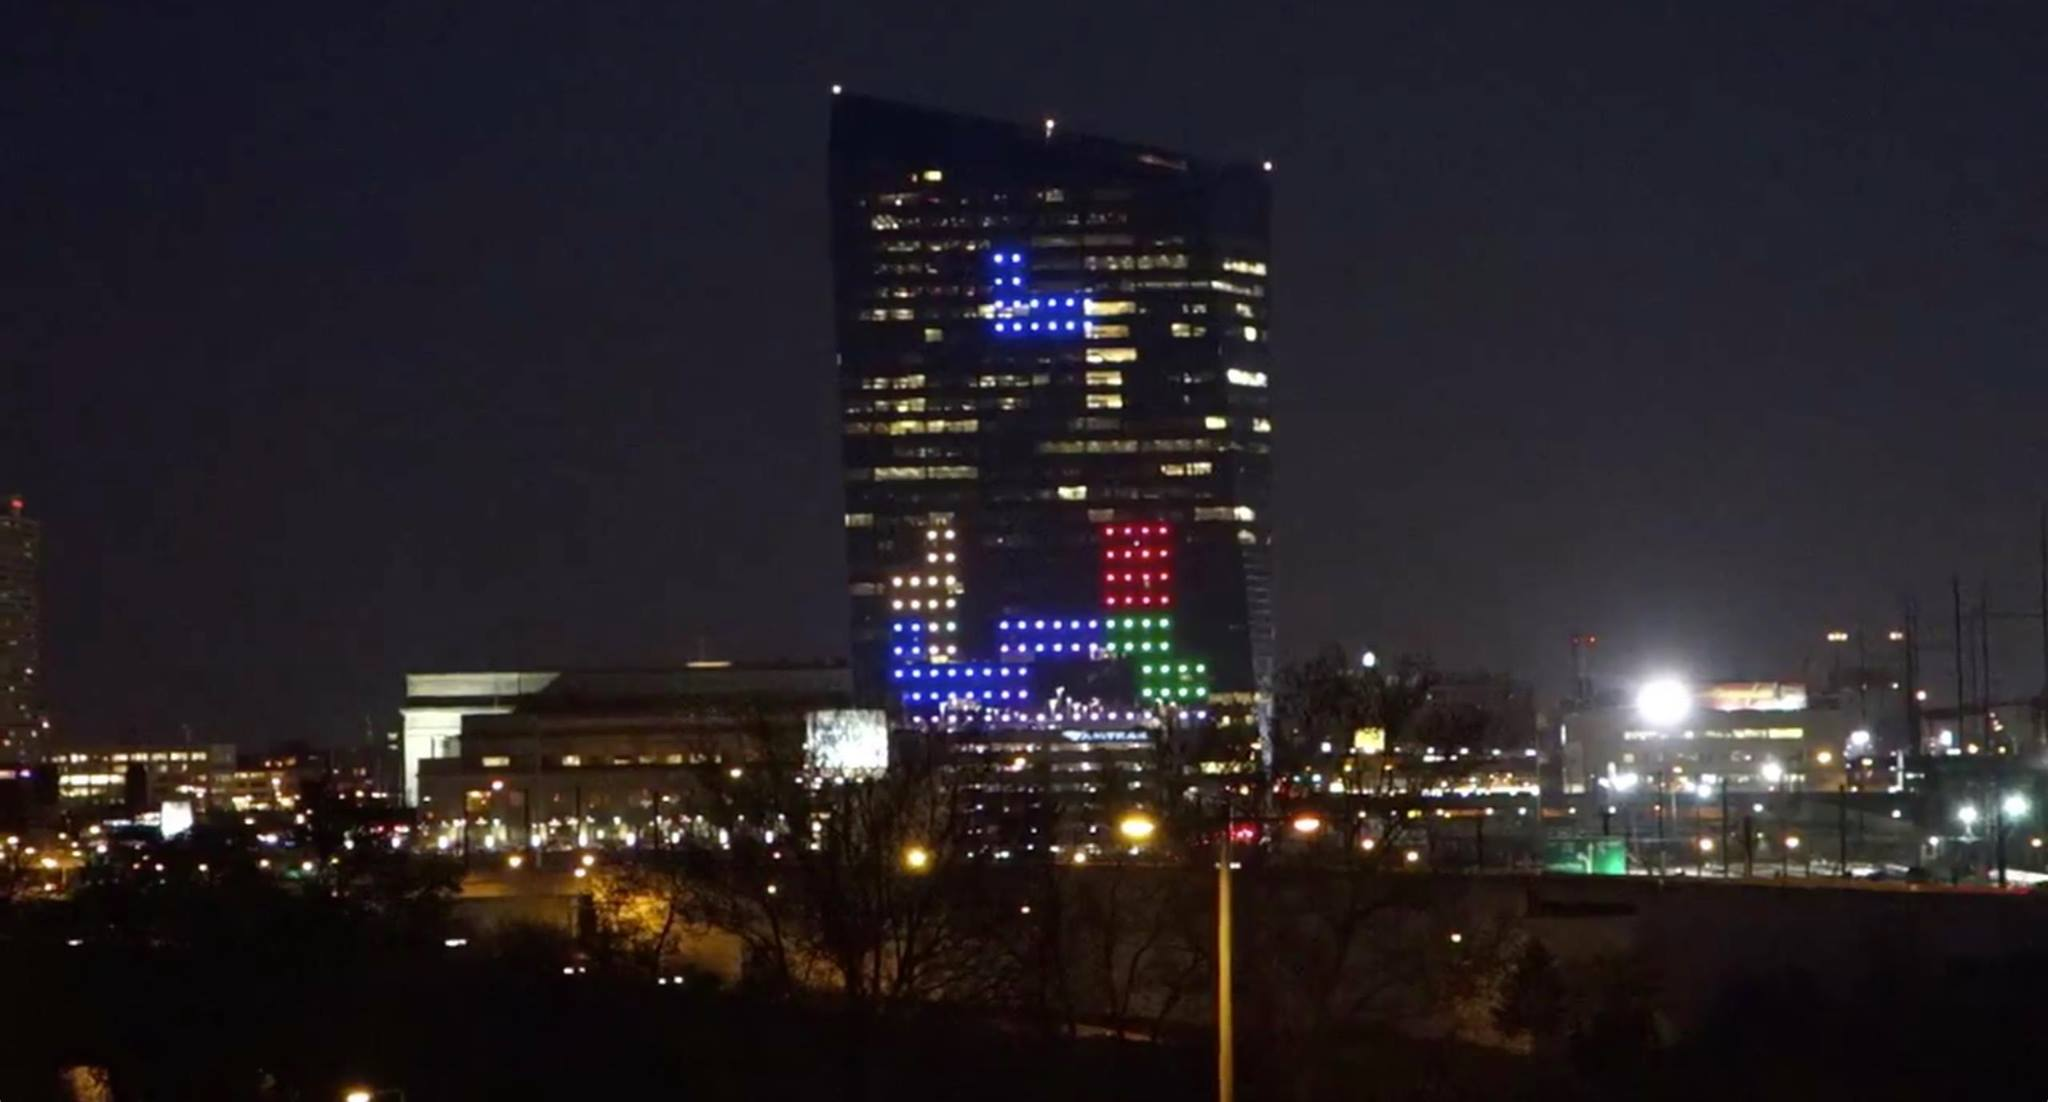 Watch Tetris Being Played on the Side of a Skyscraper in Philadelphia